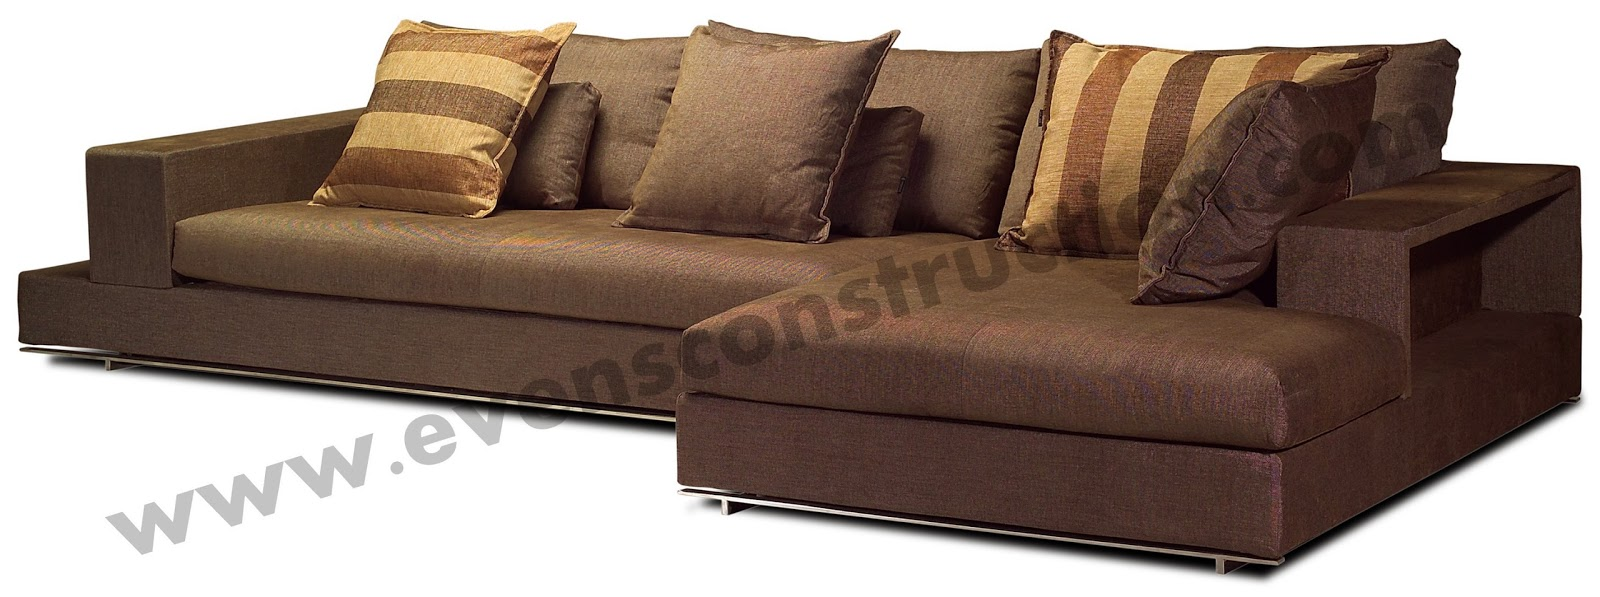 Best designer sleeper sofas sofa design Best loveseats